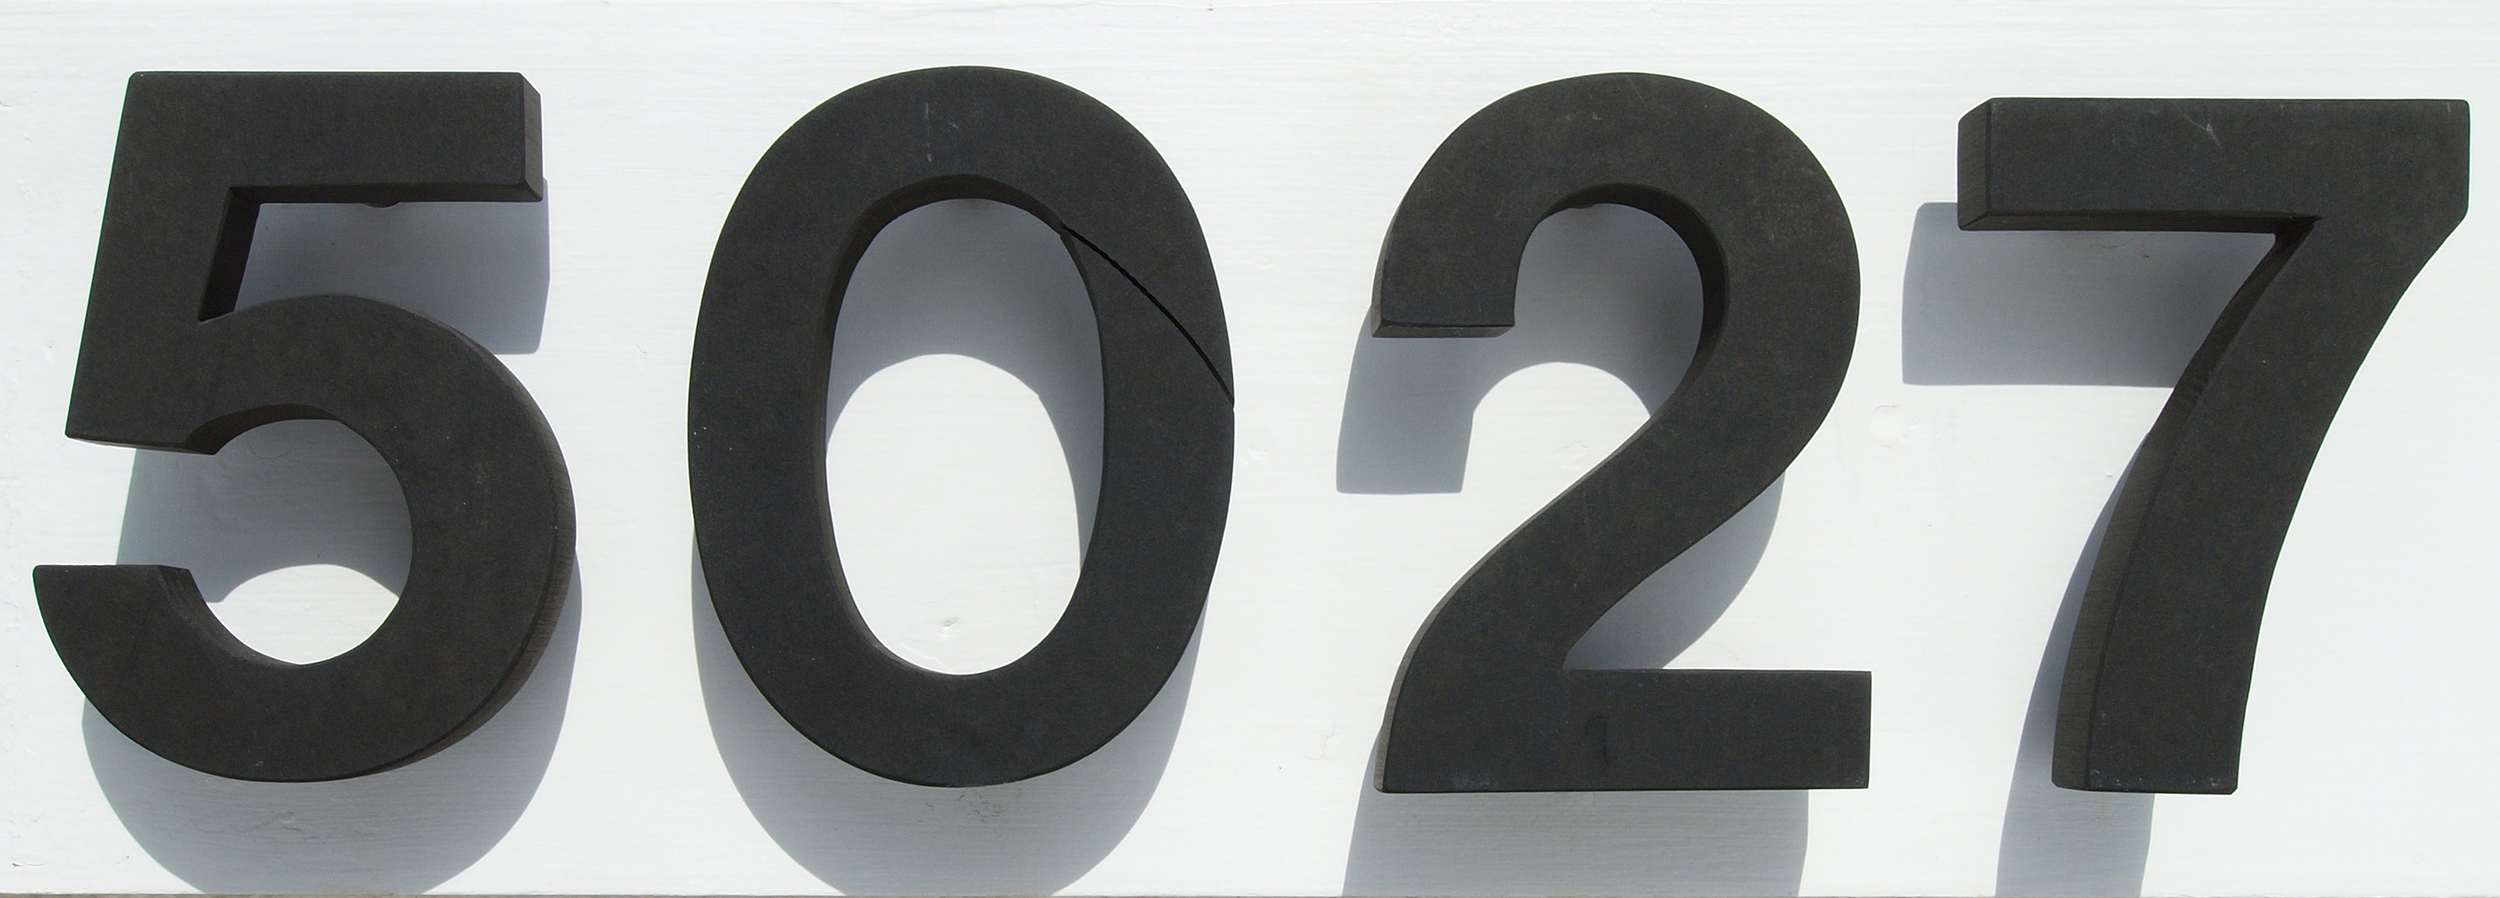 mw-house-number02.jpg